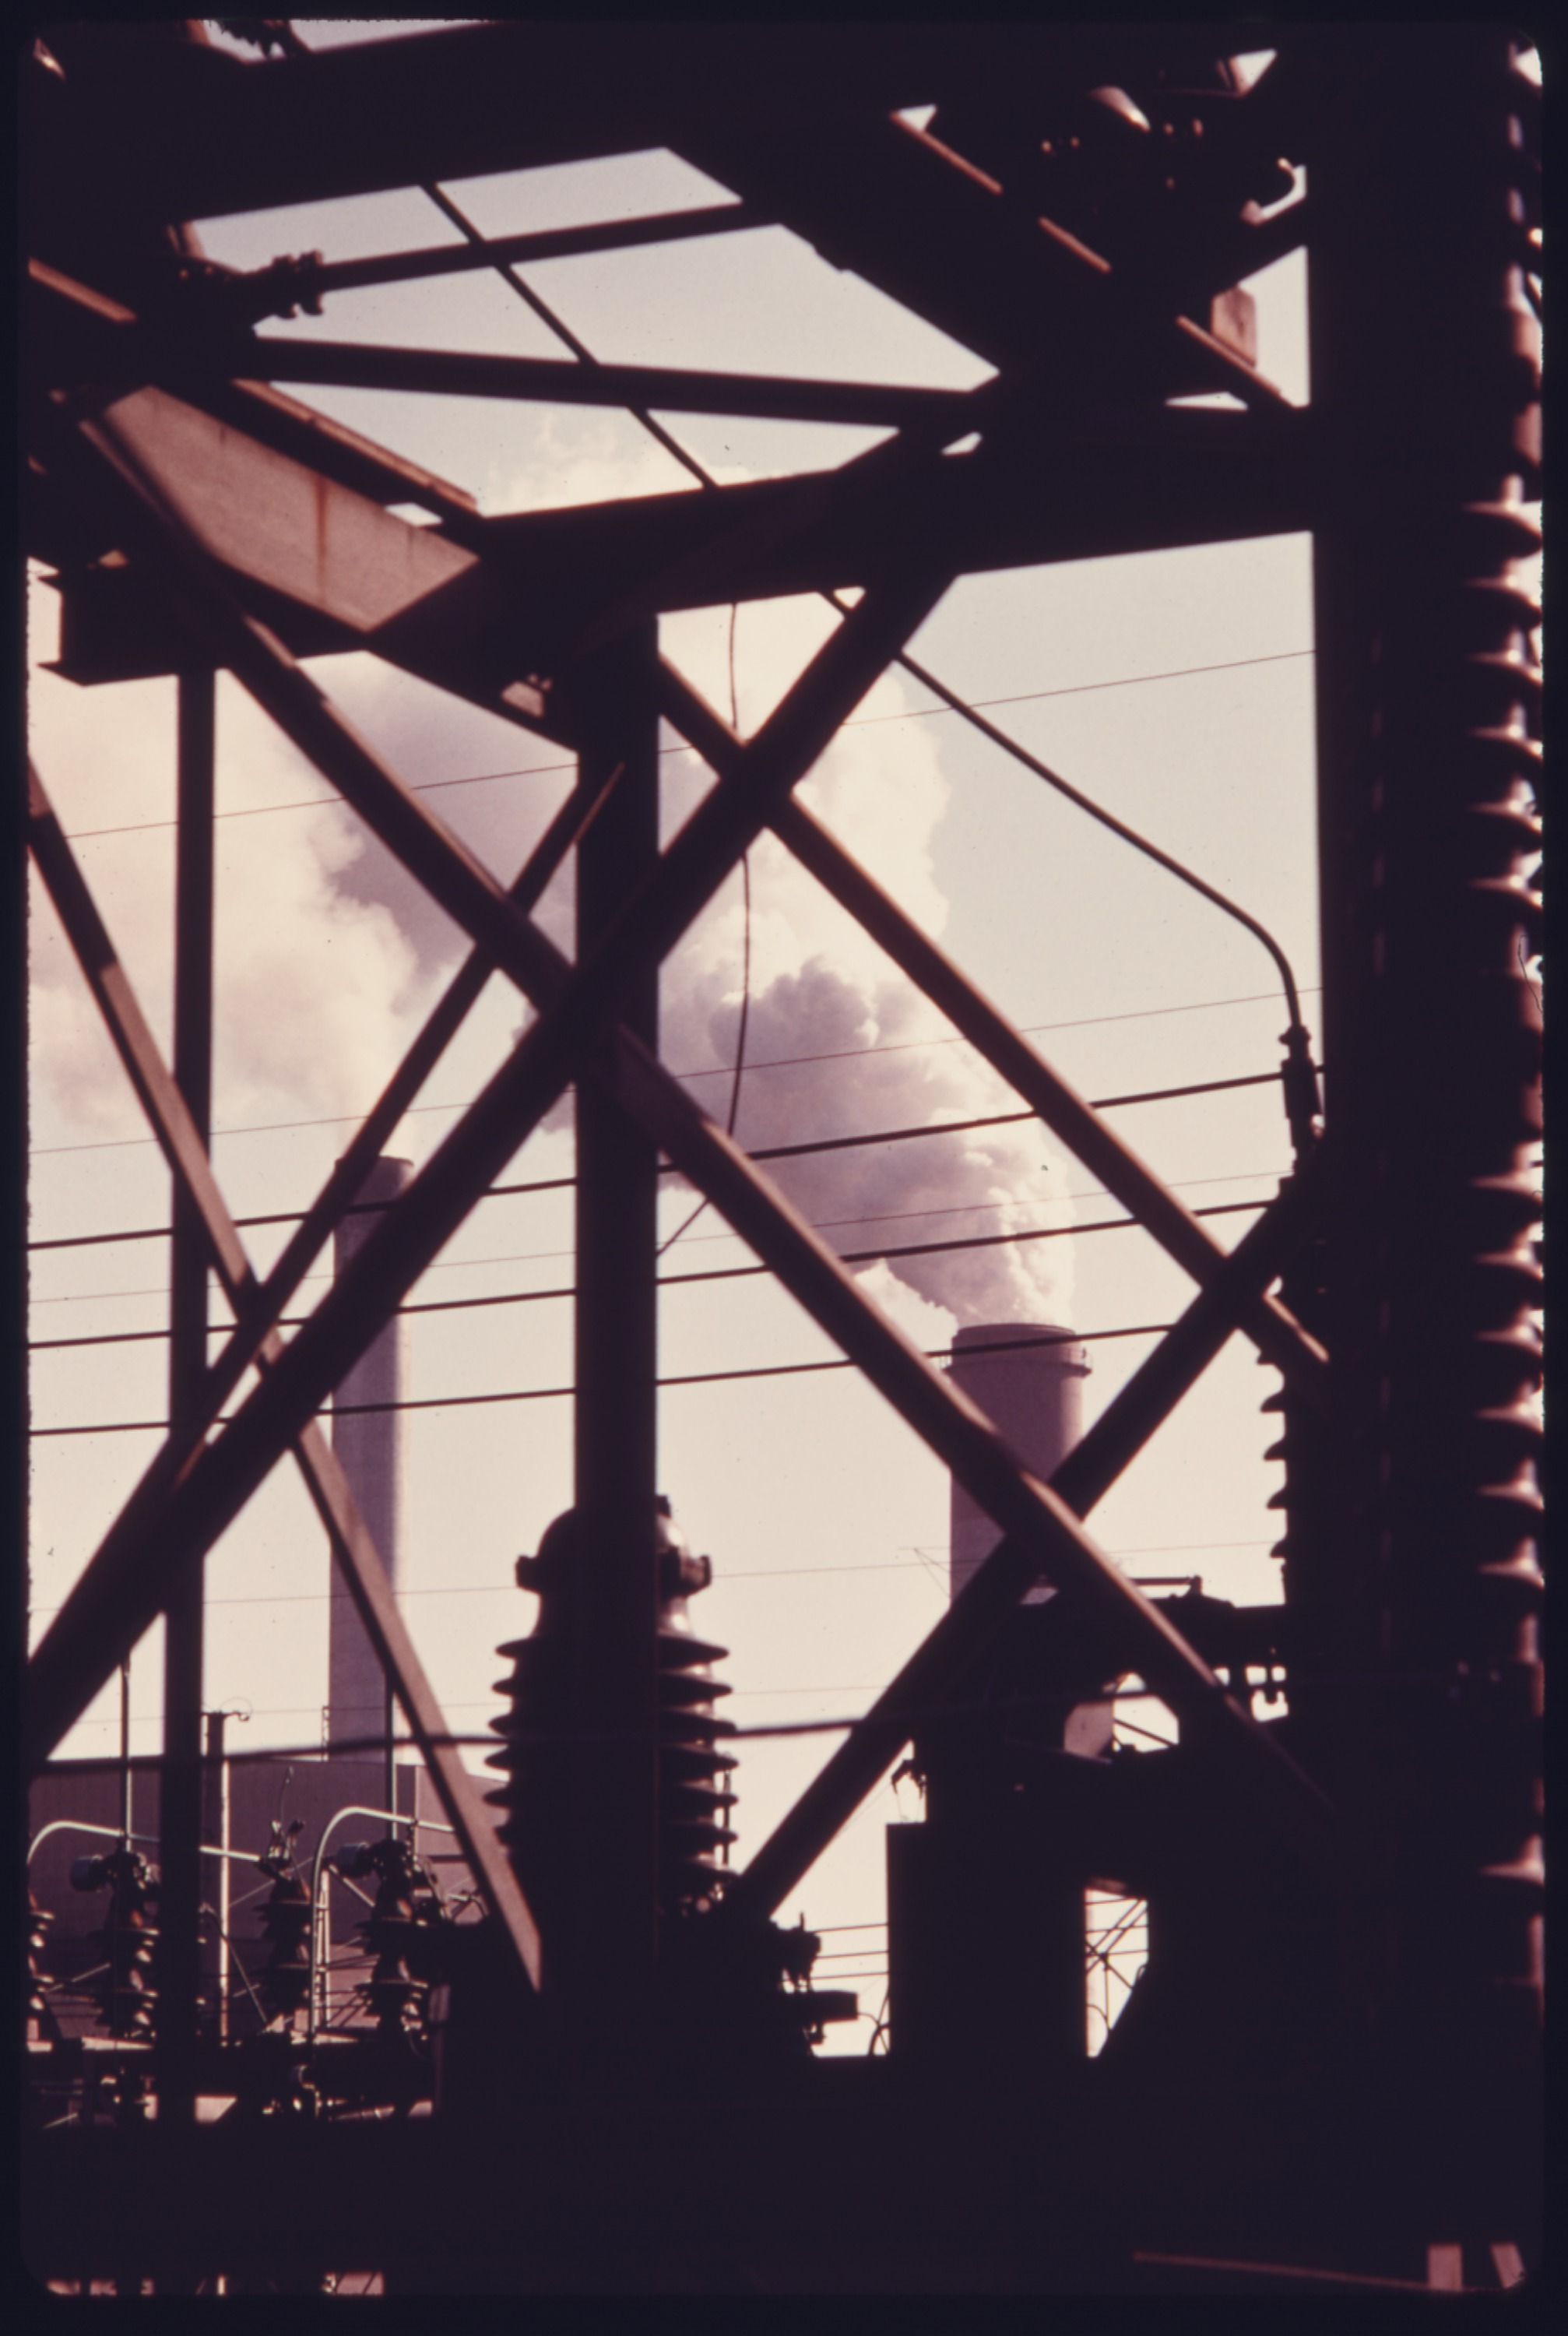 File:SMOKE FROM STACKS AT THE PHILLIPS POWER STATION OWNED BY THE DUQUESNE  LIGHT COMPANY